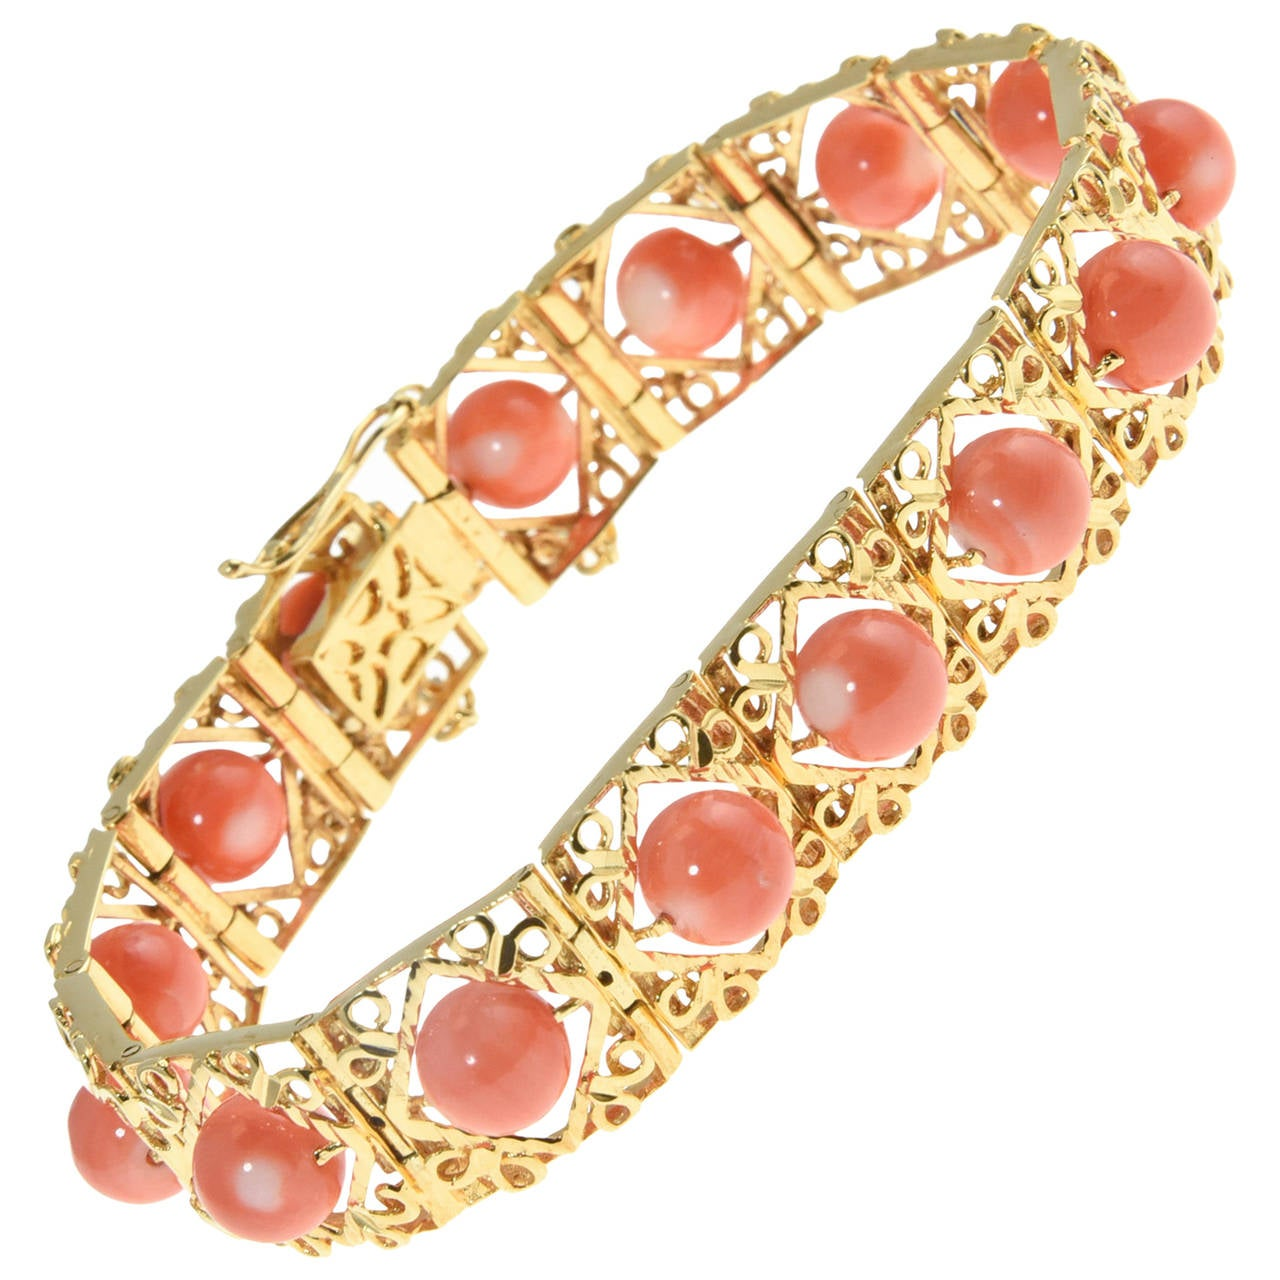 1970s Highly Stylized Coral Gold Link Bracelet